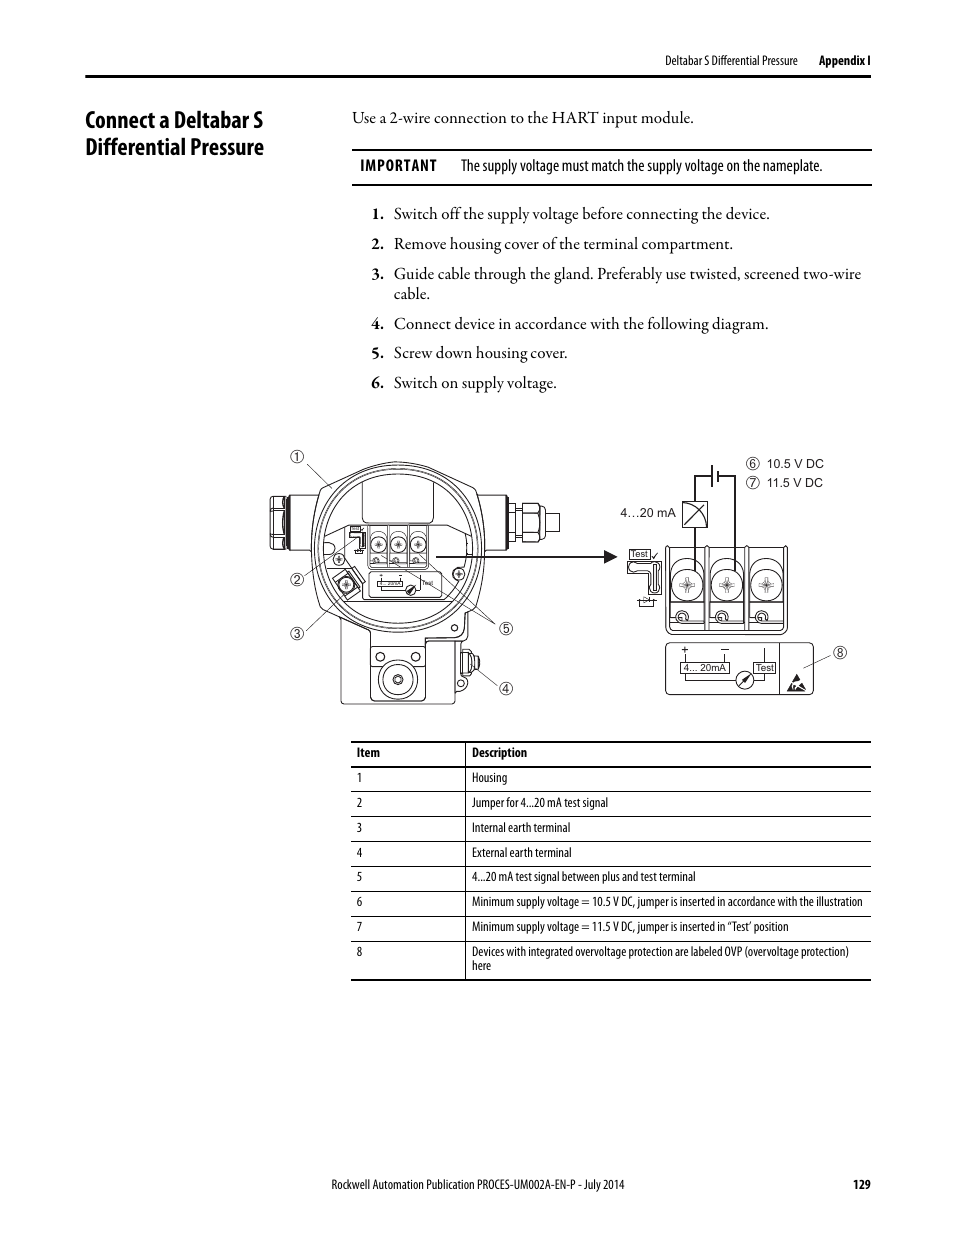 Connect A Deltabar S Differential Pressure Rockwell Automation Ovp Wiring Diagram 1734sc Ie4ch E H Instruments Via Hart To Plantpax User Manual Page 129 160